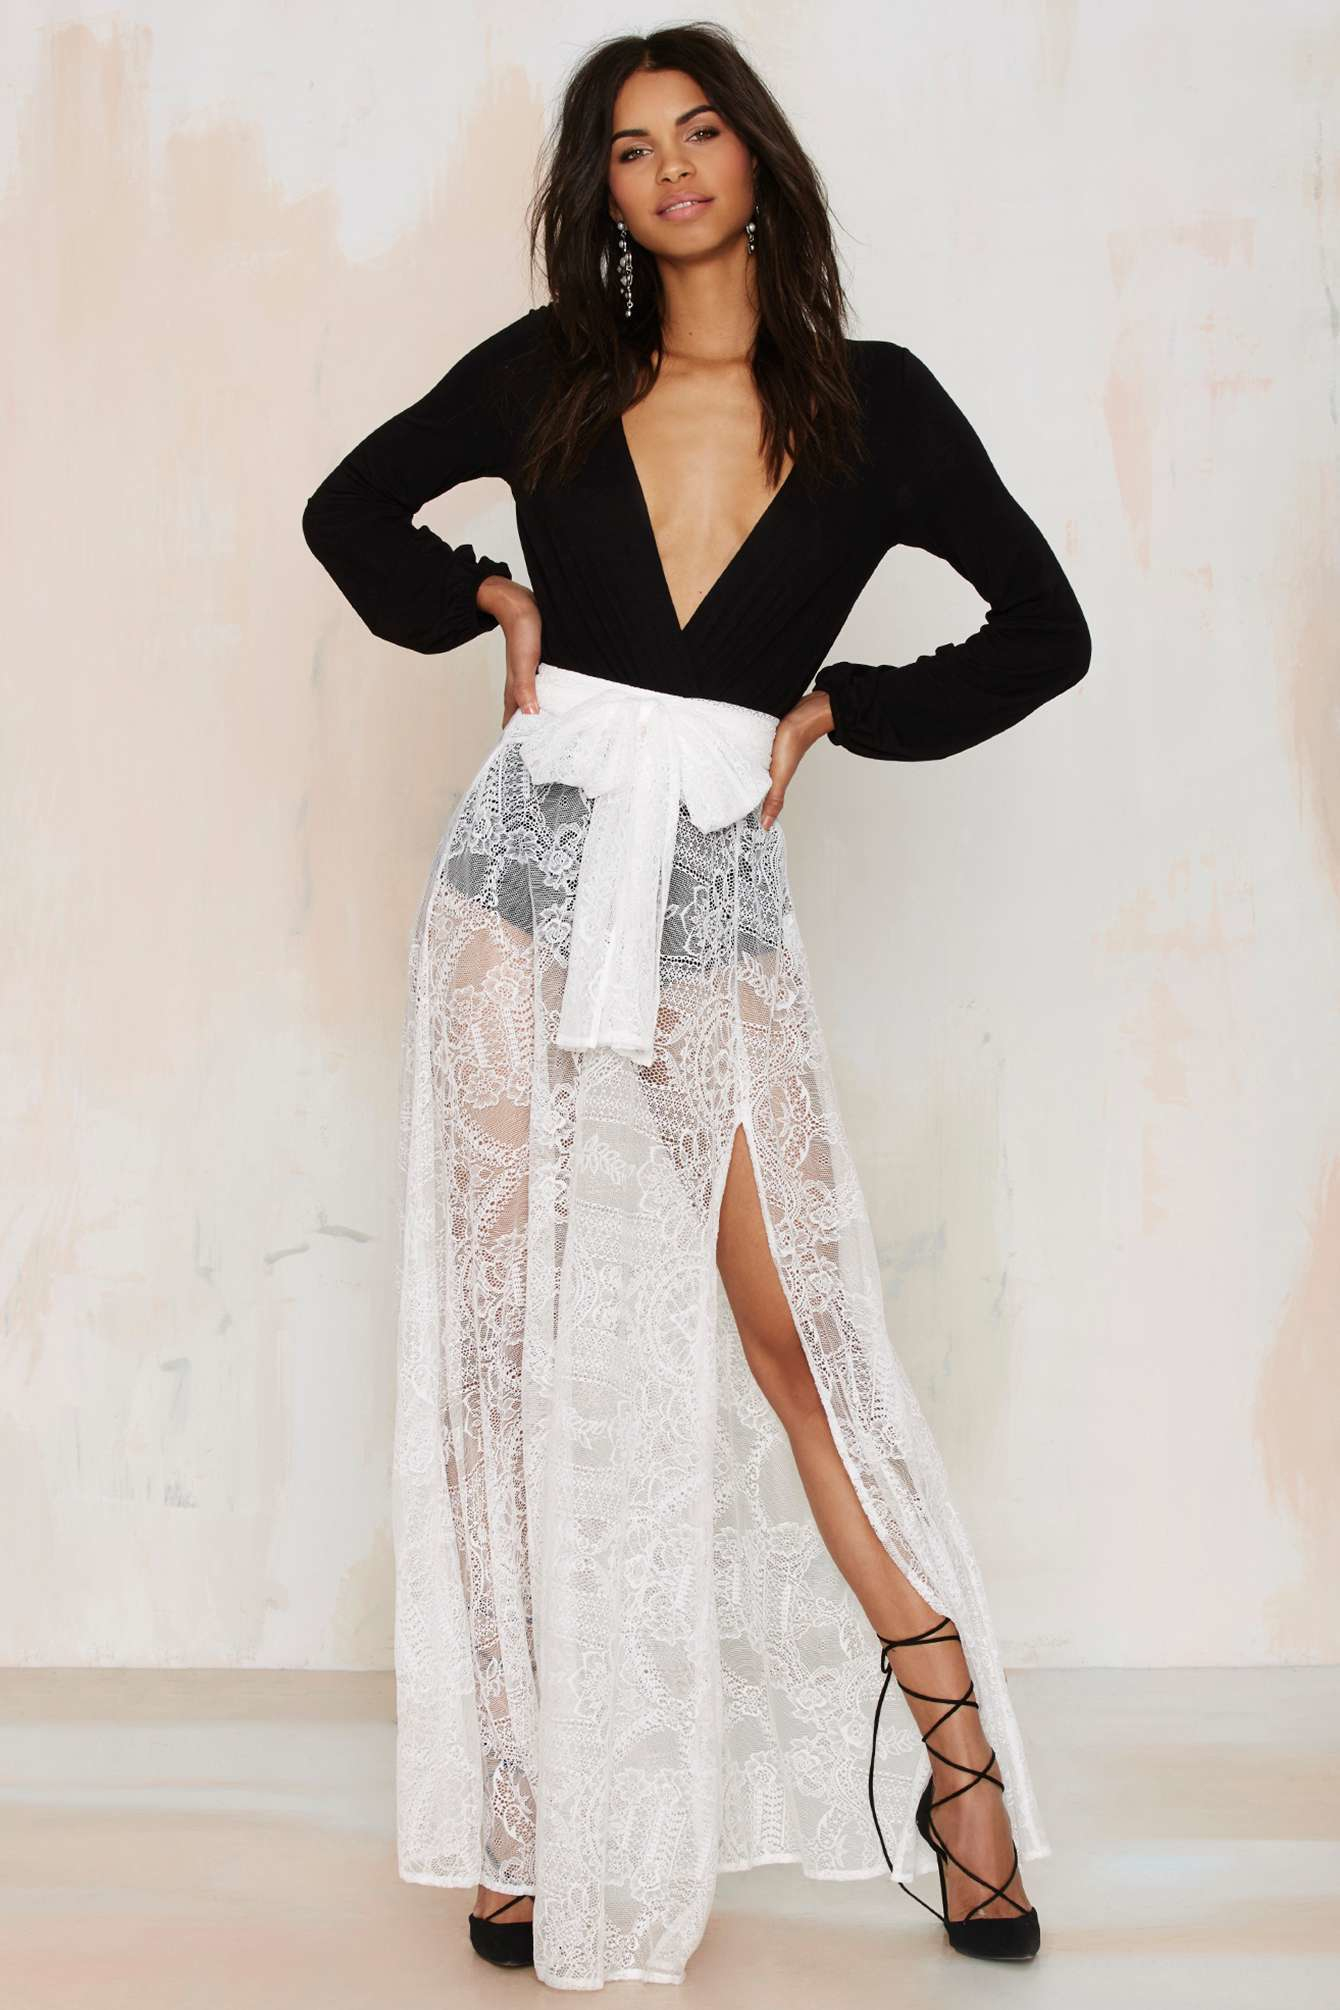 save up to 80% marketable better Nasty Gal Just In Lace Maxi Skirt - White